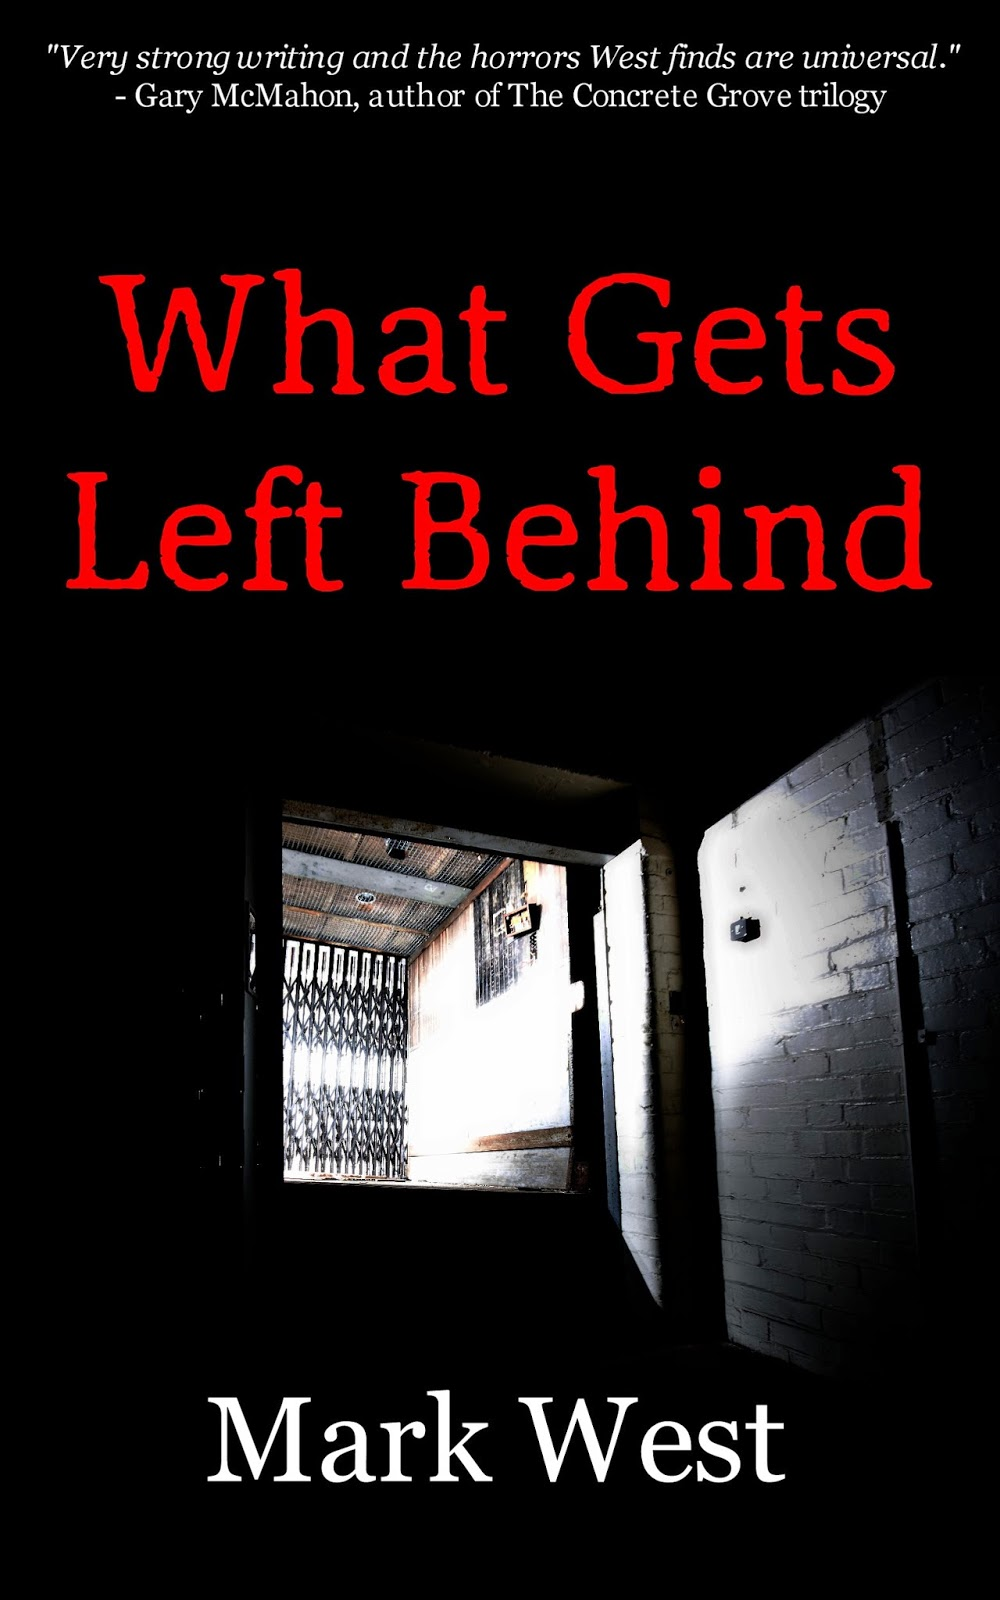 Strange tales april 2015 what gets left behind now available as an ebook fandeluxe Gallery